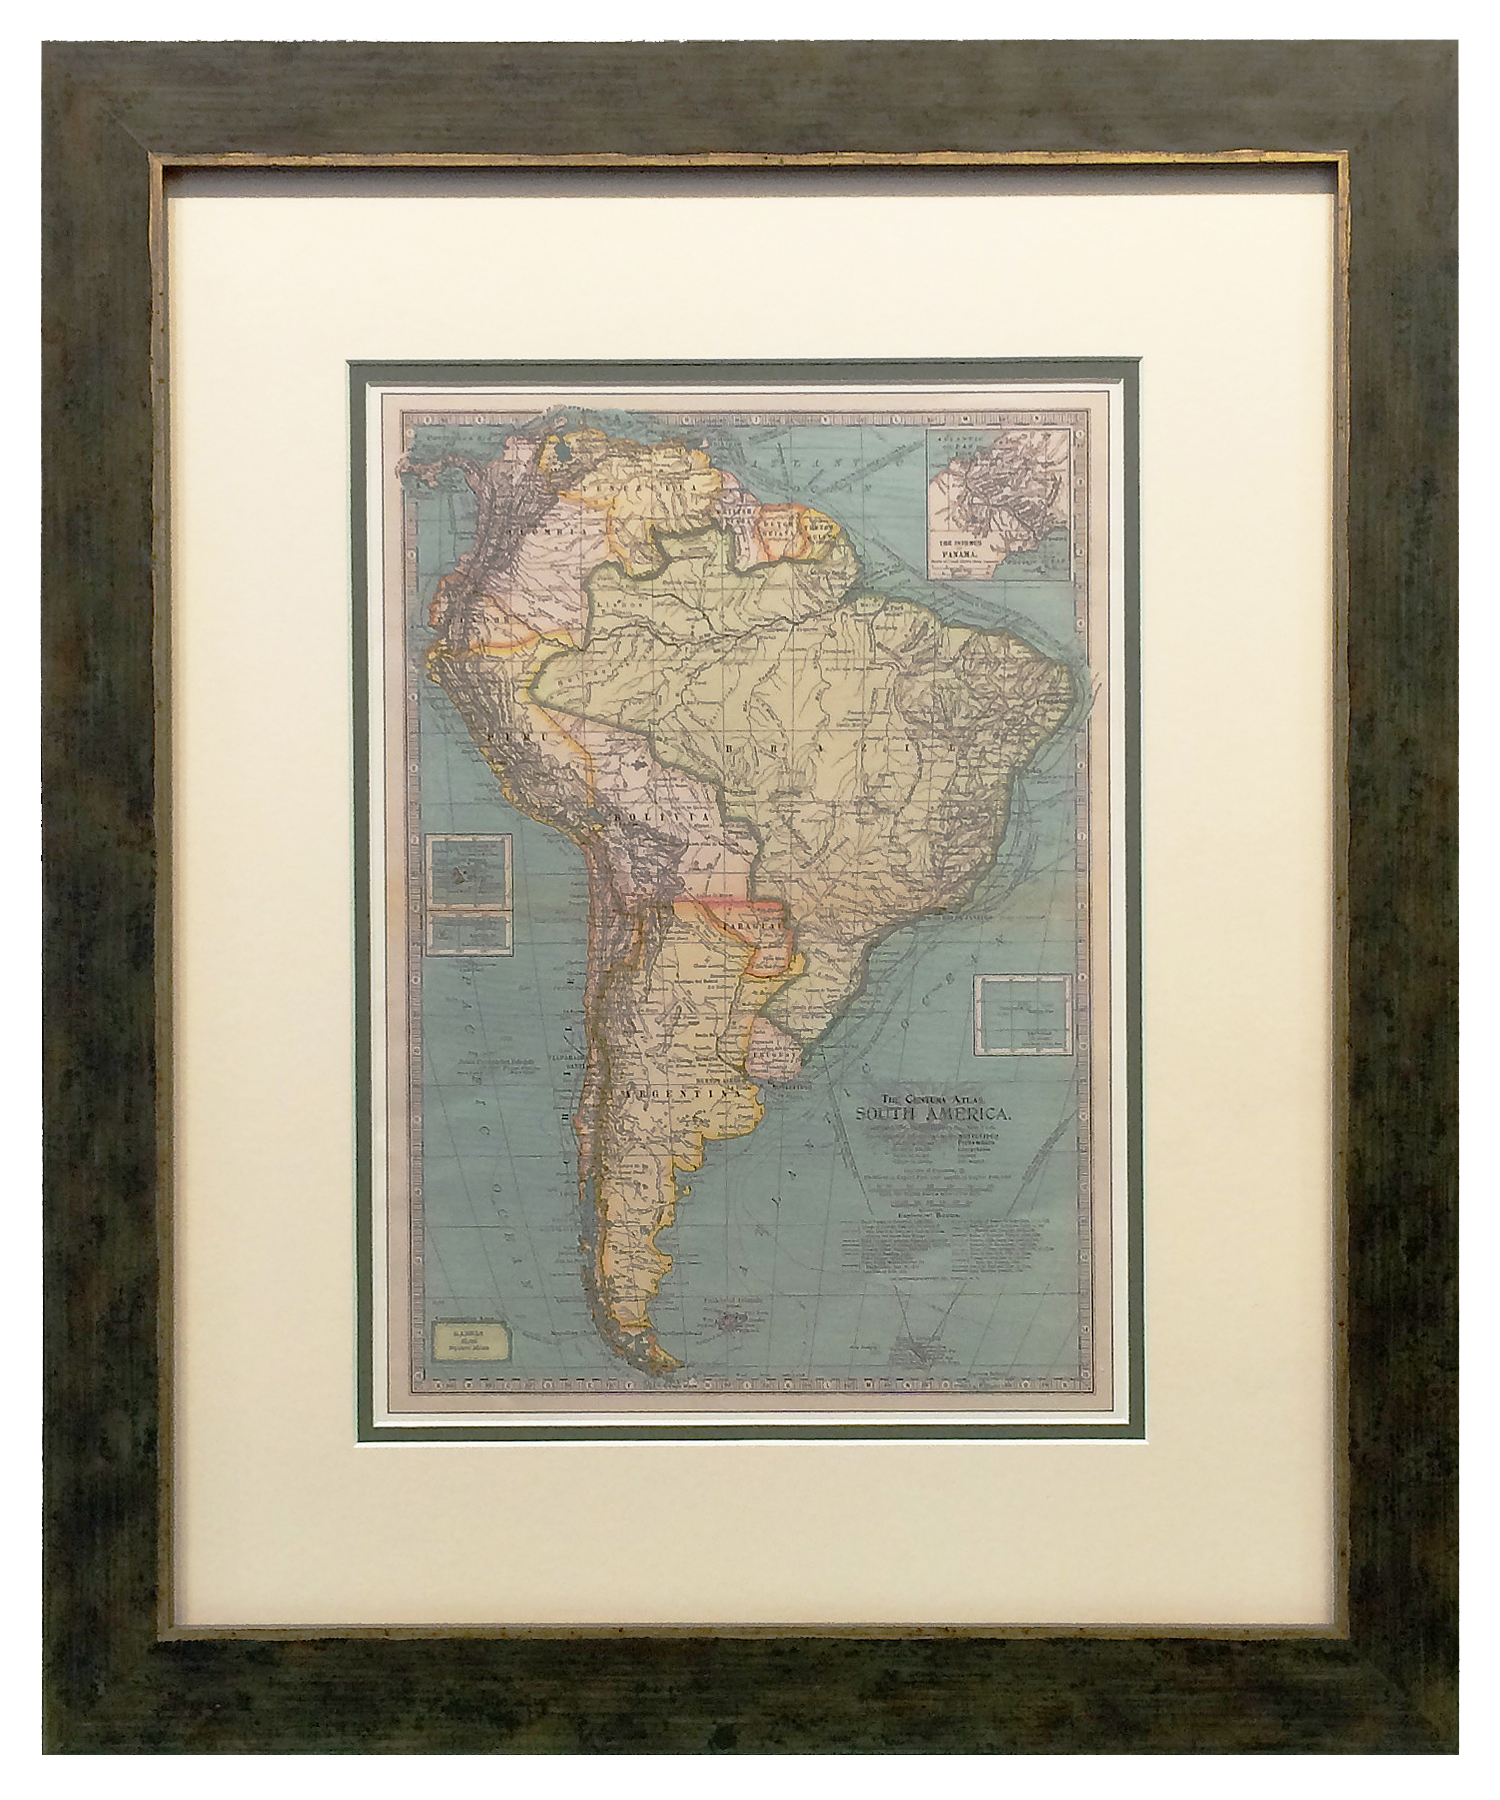 An 1897 vintage map of South America framed in a green distressed frame with gold accents.